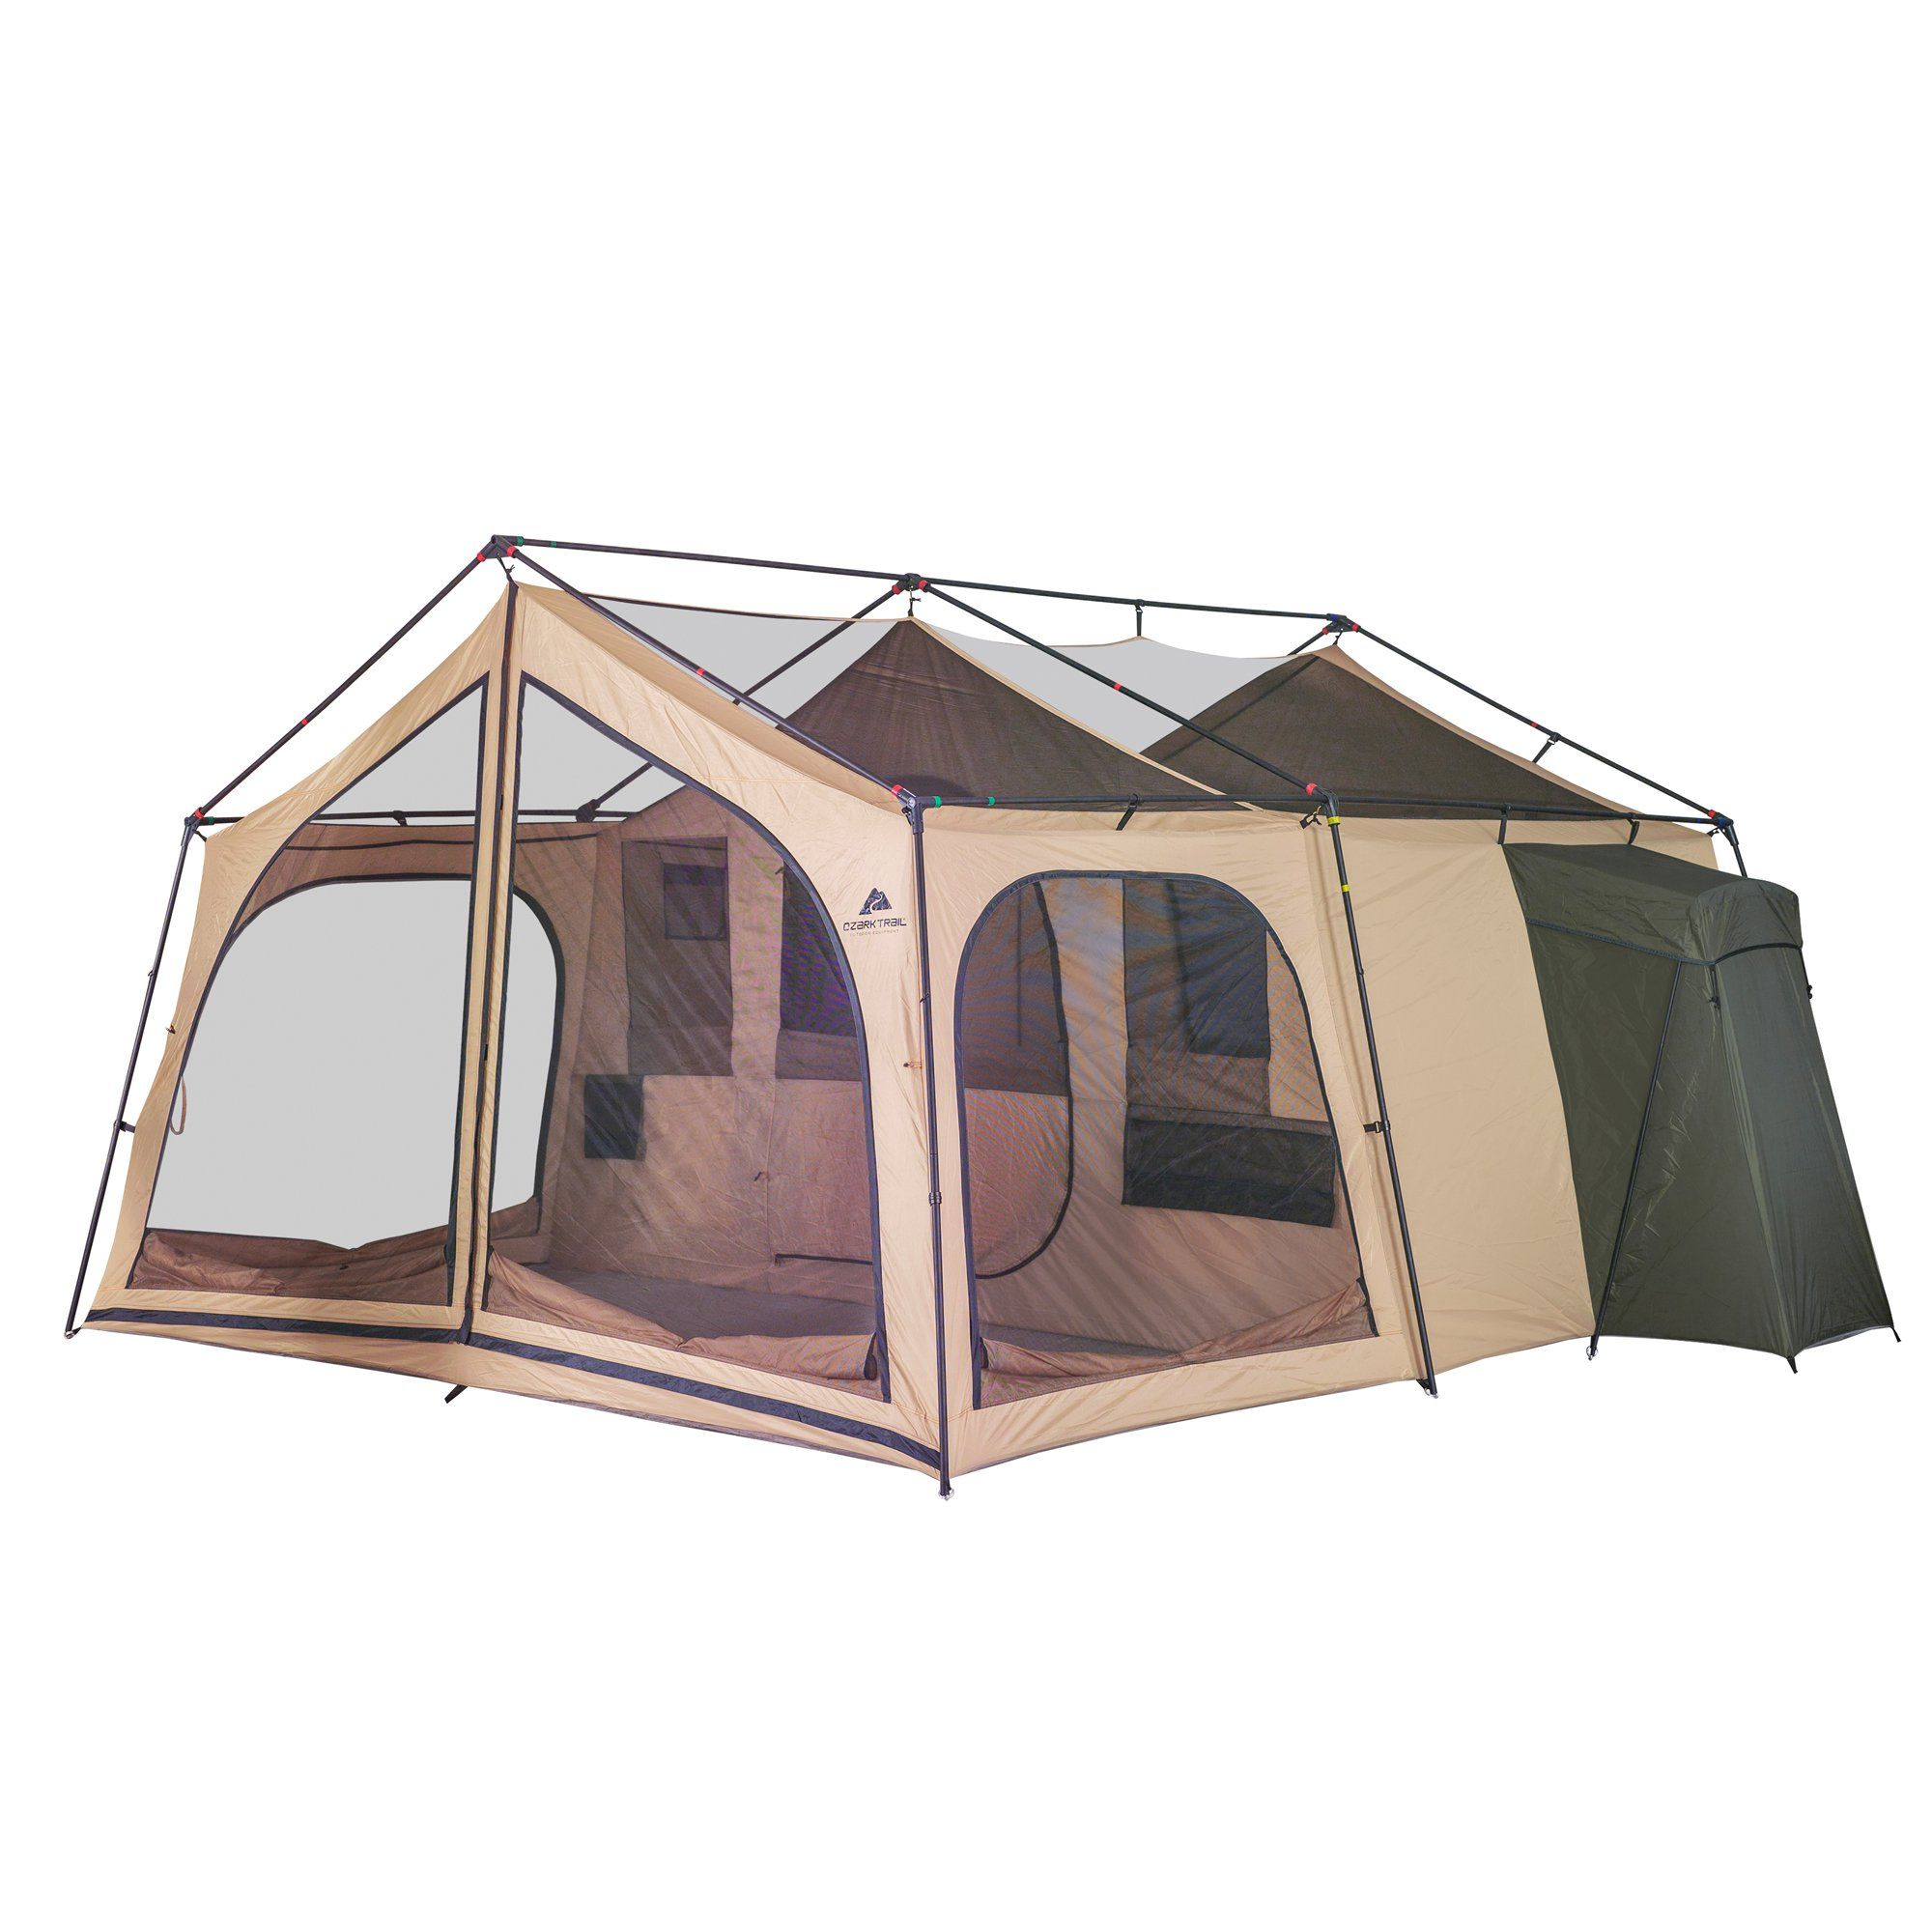 Ozark Trail 14 Person Cabin Tent For Camping Walmart Com Cabin Camping Cabin Tent Lodge Cabin